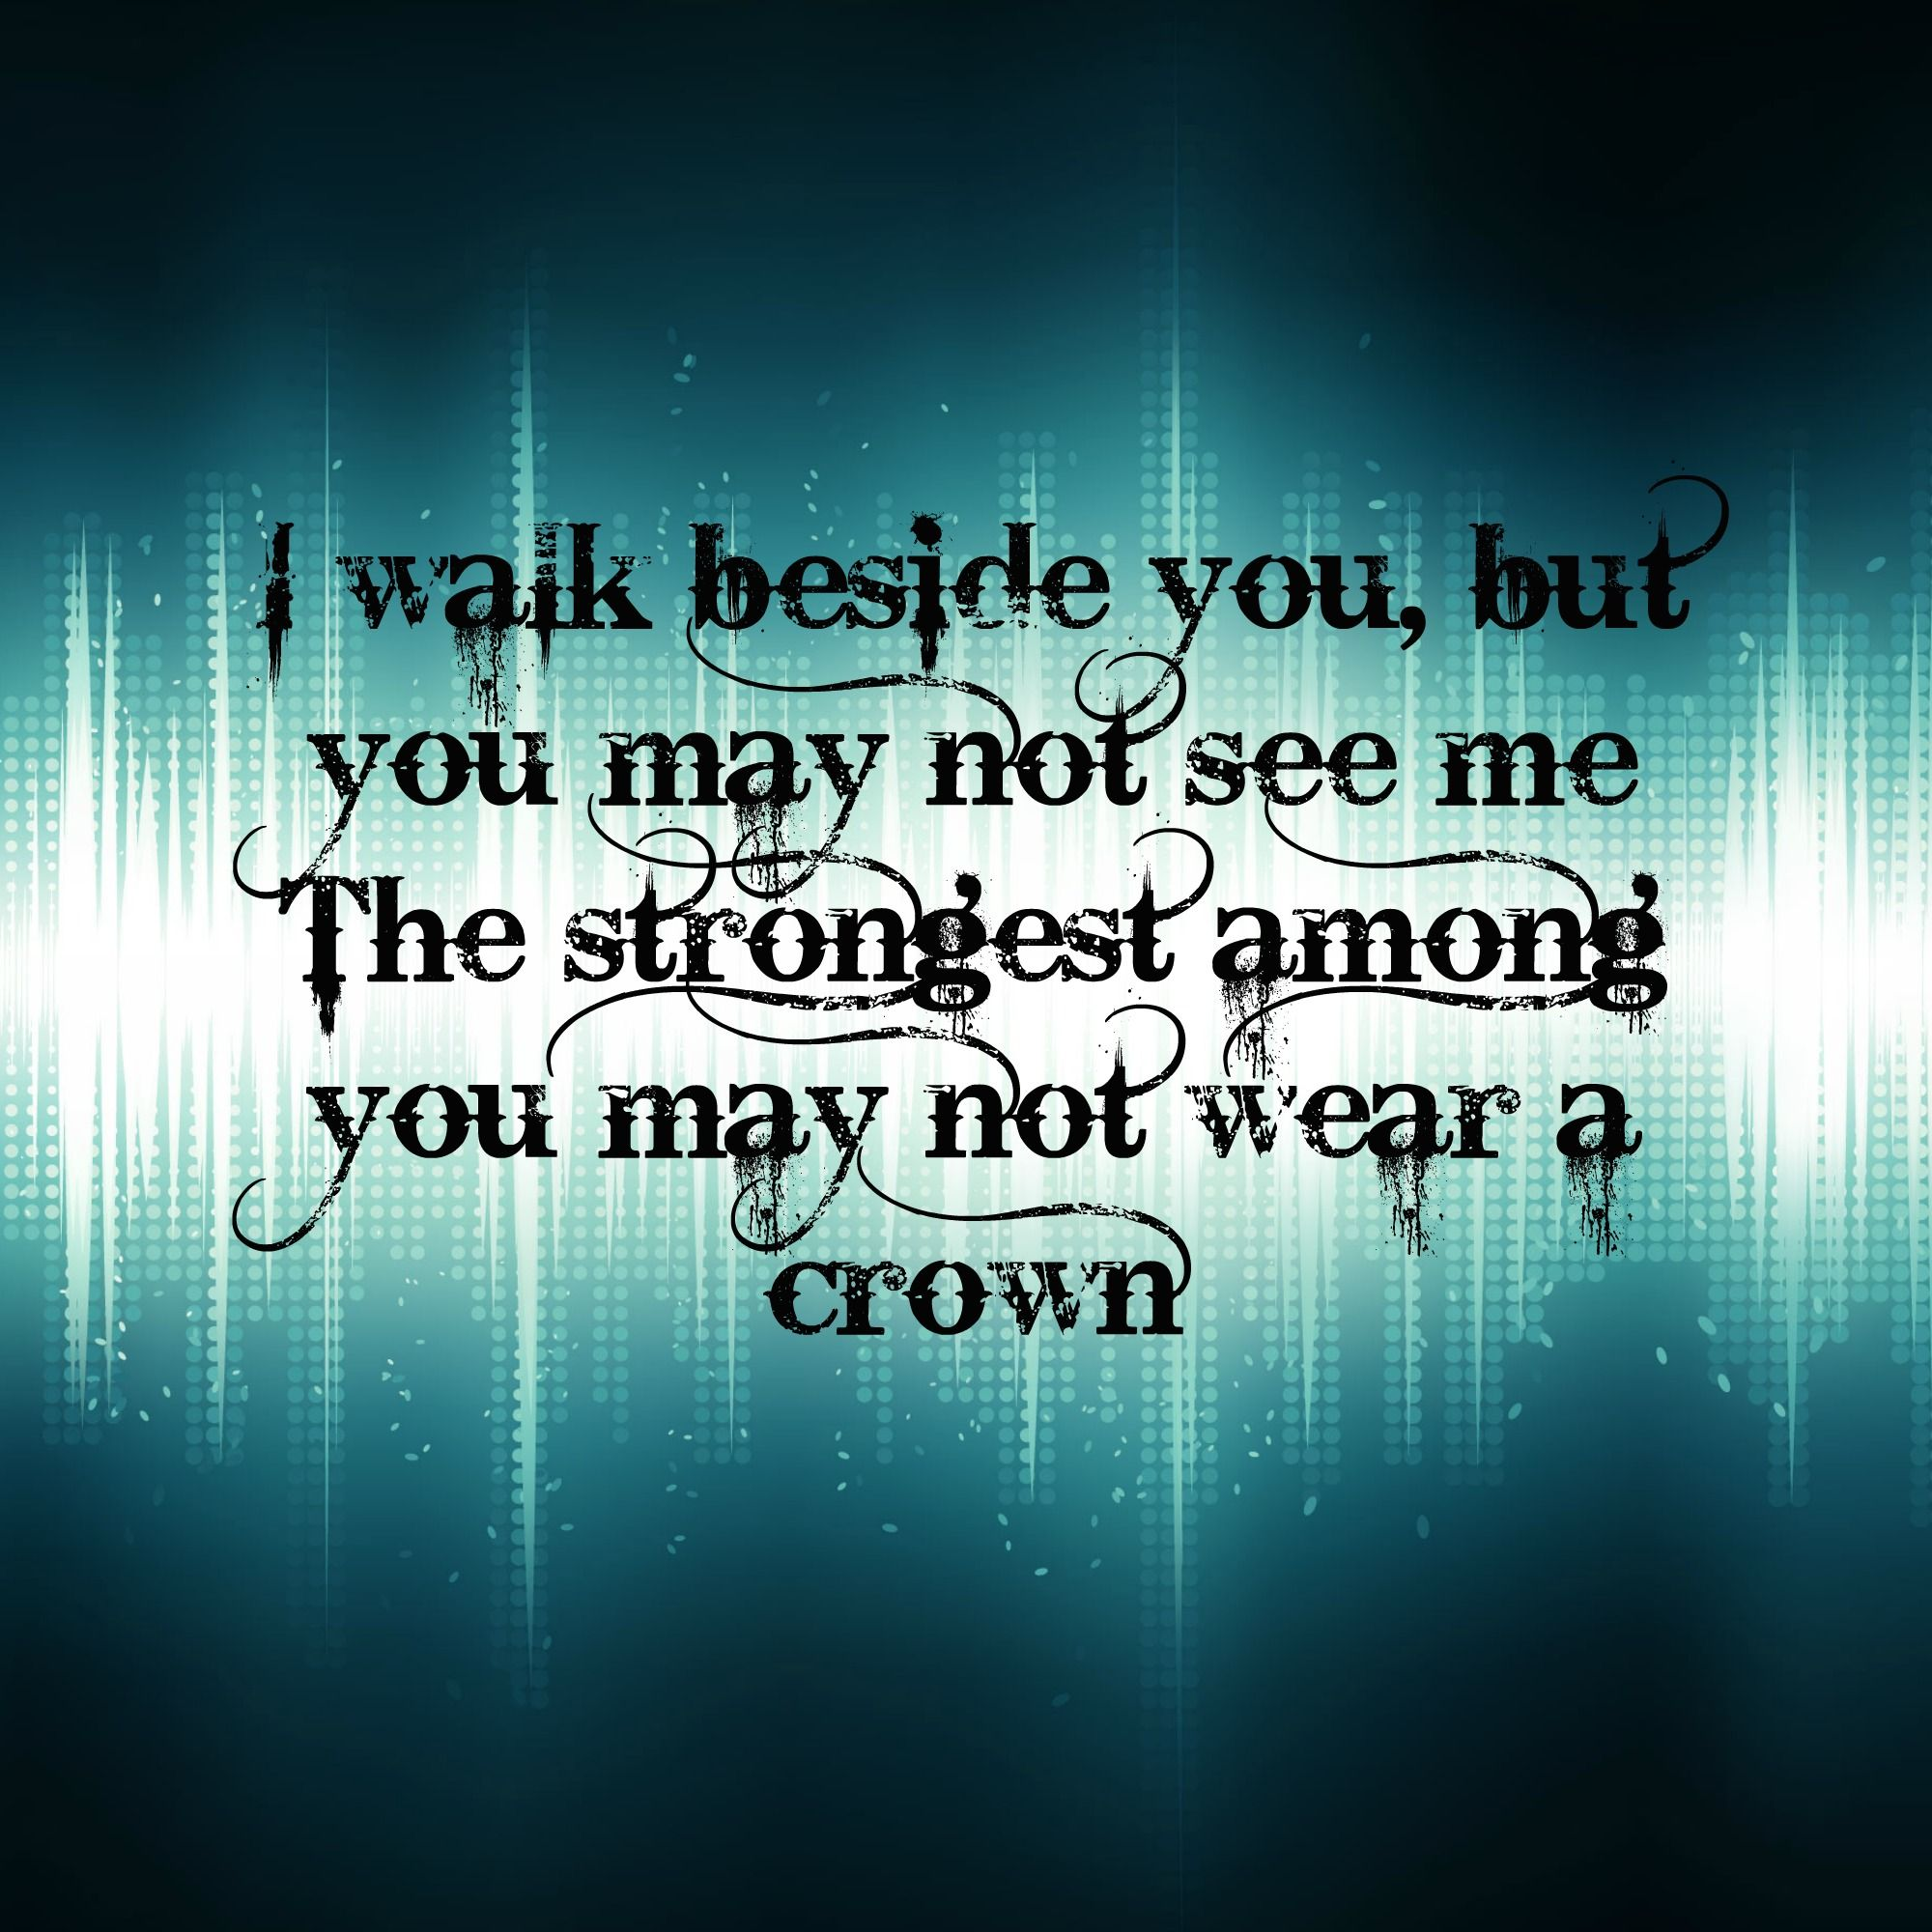 citizen soldier by 3 doors down song quotes pinterest songs. Black Bedroom Furniture Sets. Home Design Ideas